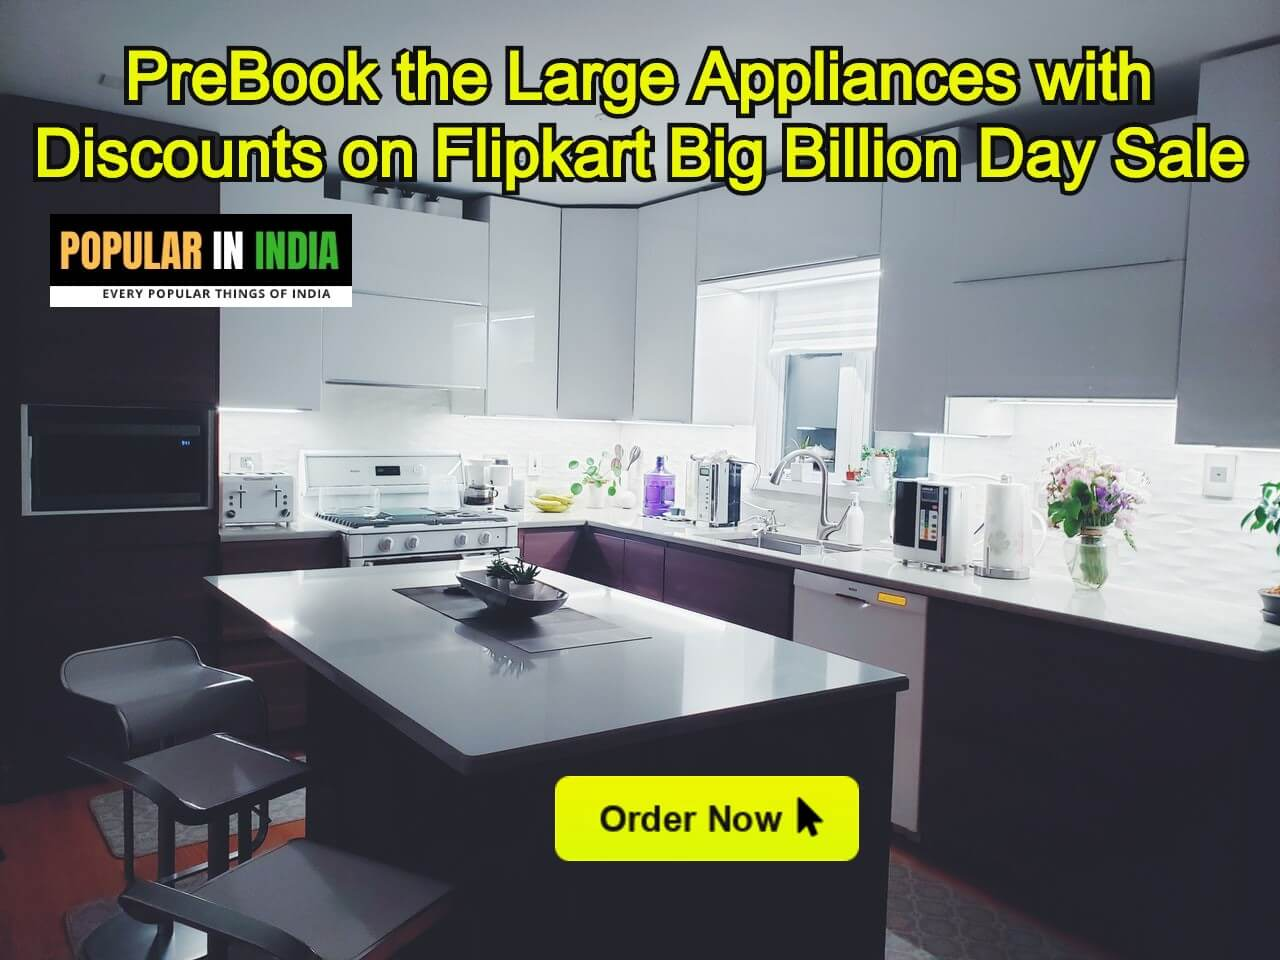 PreBook the Large Appliances with Discounts on Flipkart Big Billion Day Sale